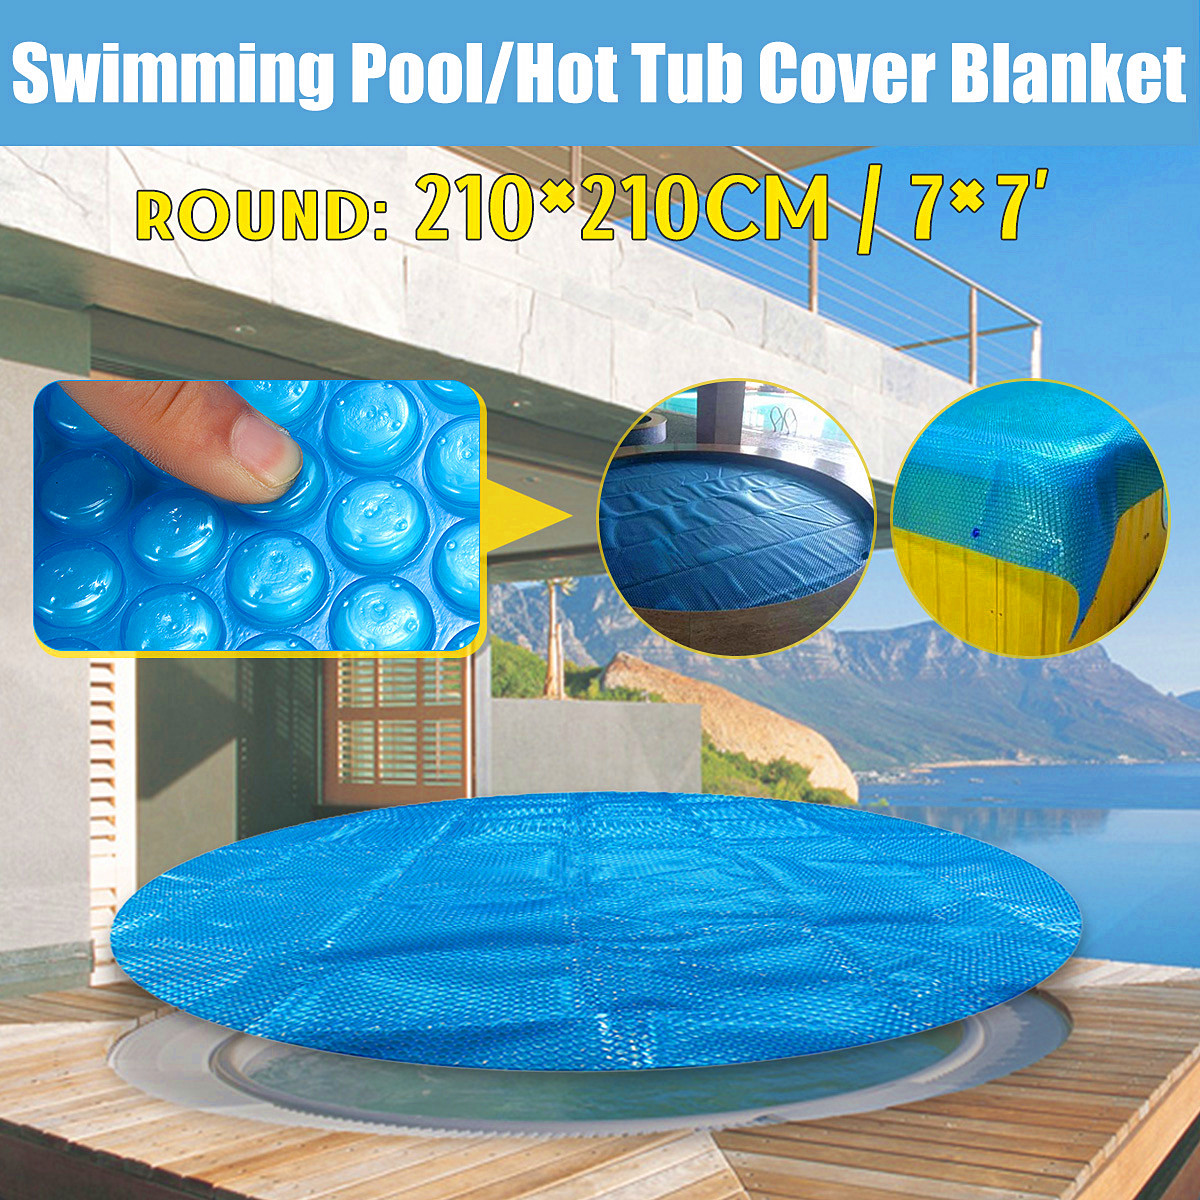 7' Round Family Pool Swimming Pool Hot Tub Cover Blanket Kid Adult Children Blue Garden Balcony Outdoor Play Pool Cover